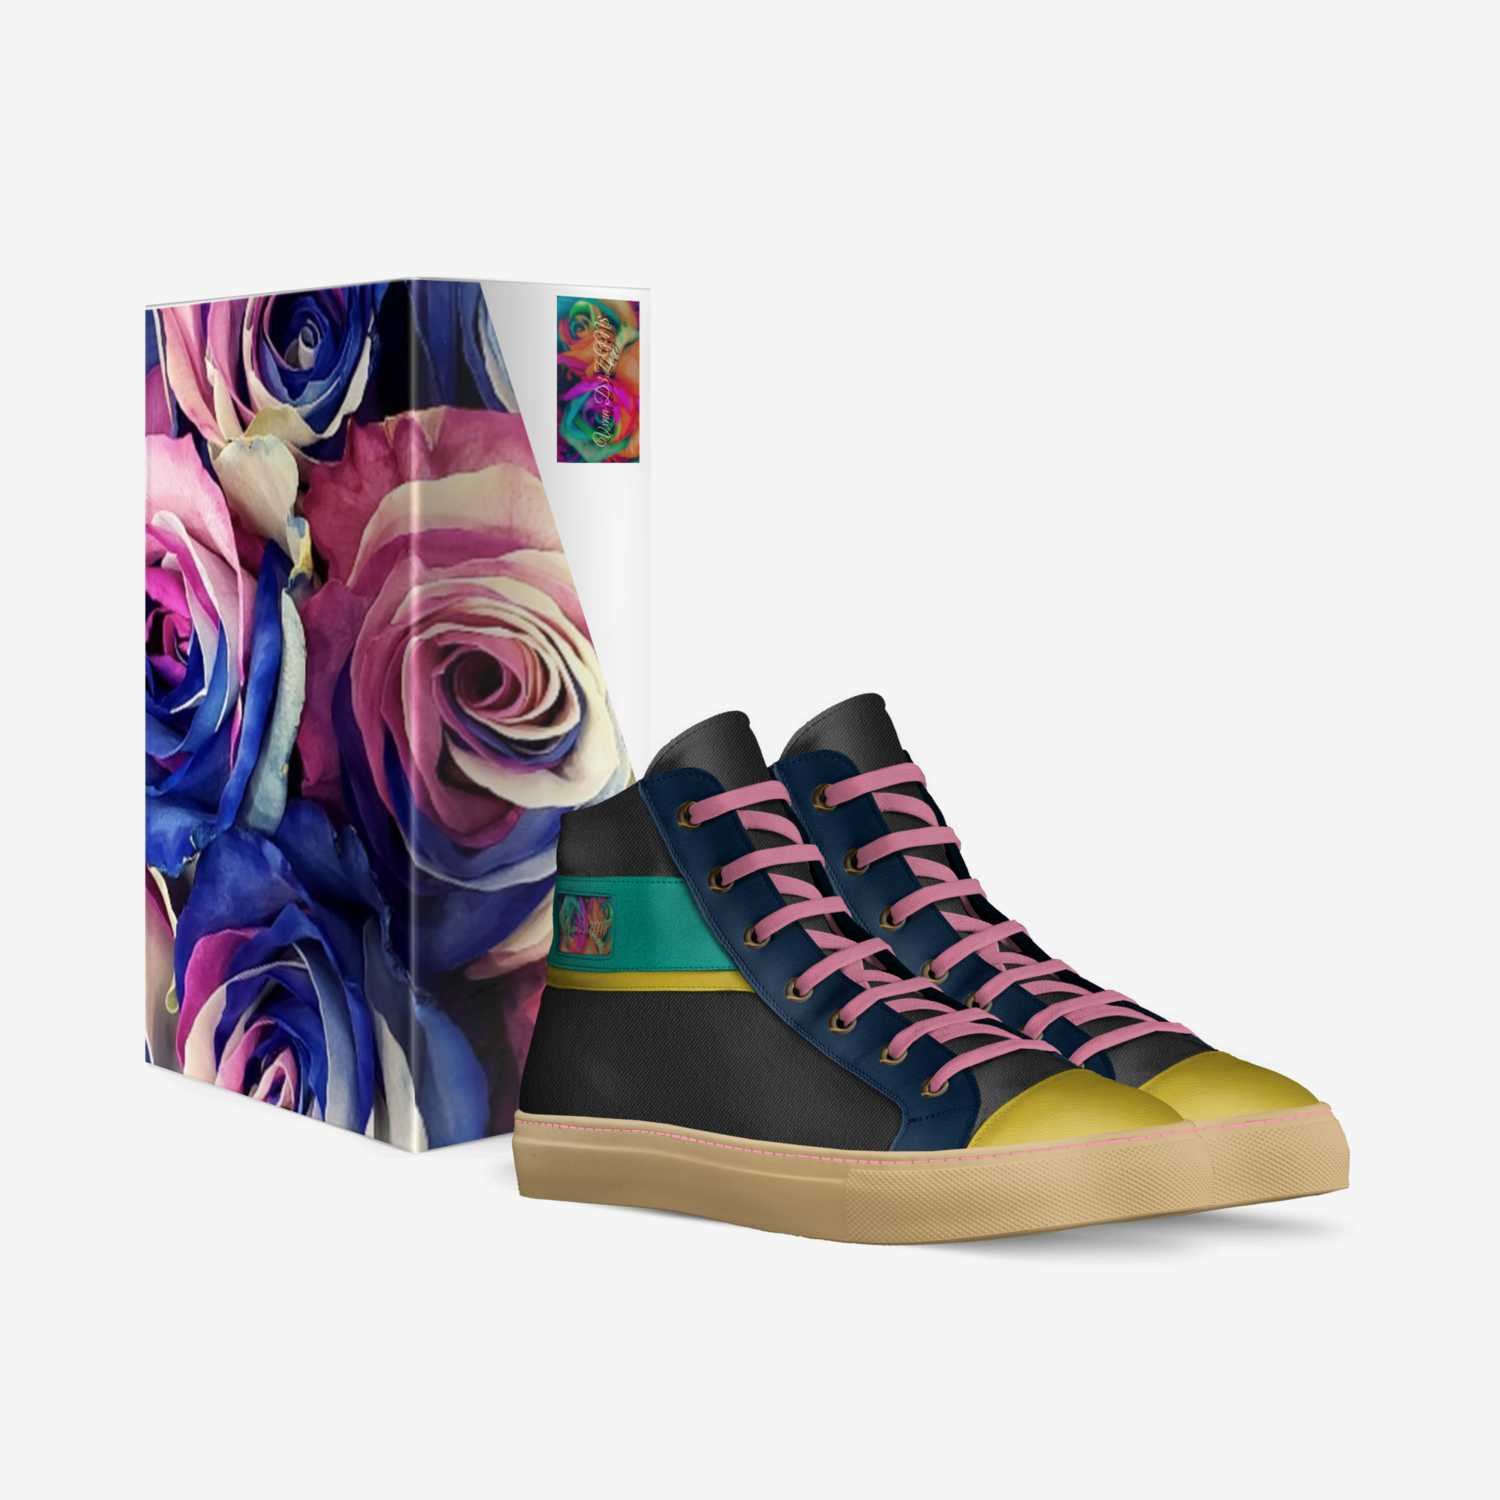 Pandemon¡um custom made in Italy shoes by Carrvon Taylor | Box view